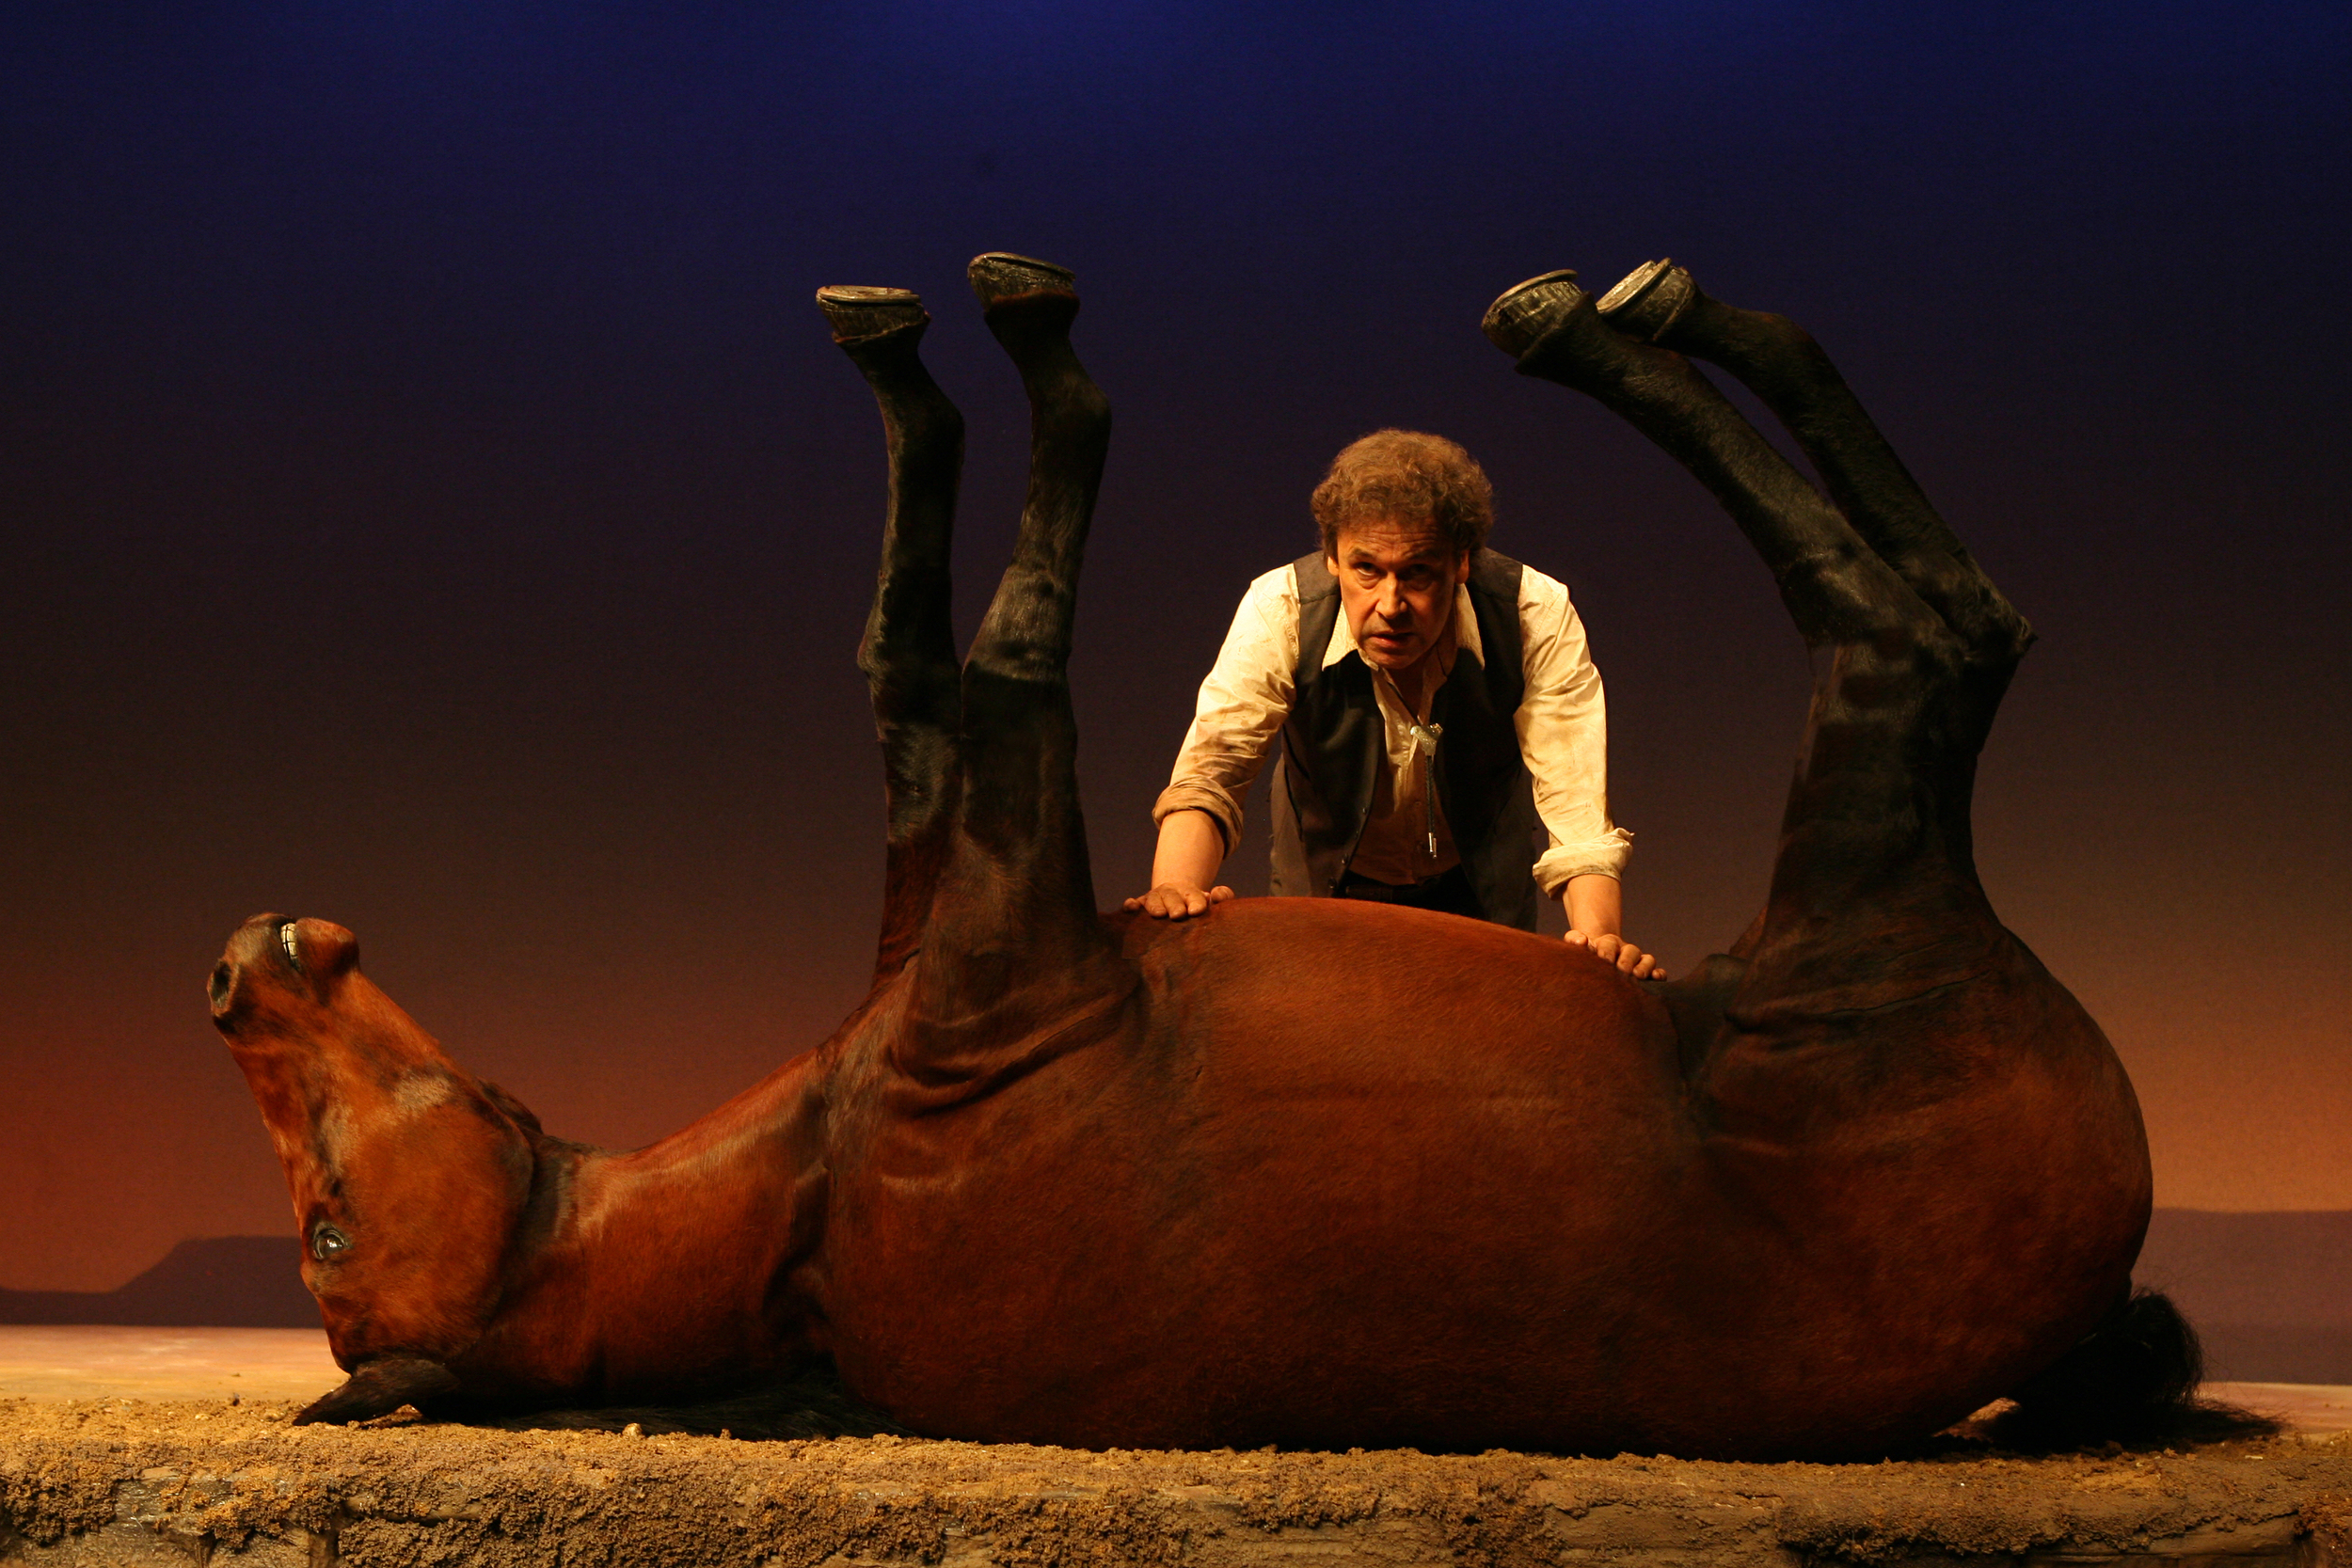 Stephen Rea in Kicking a Dead Horse by Sam Shepard at The Public Theater, NYC, 2008. Photo credit: Joan Marcus